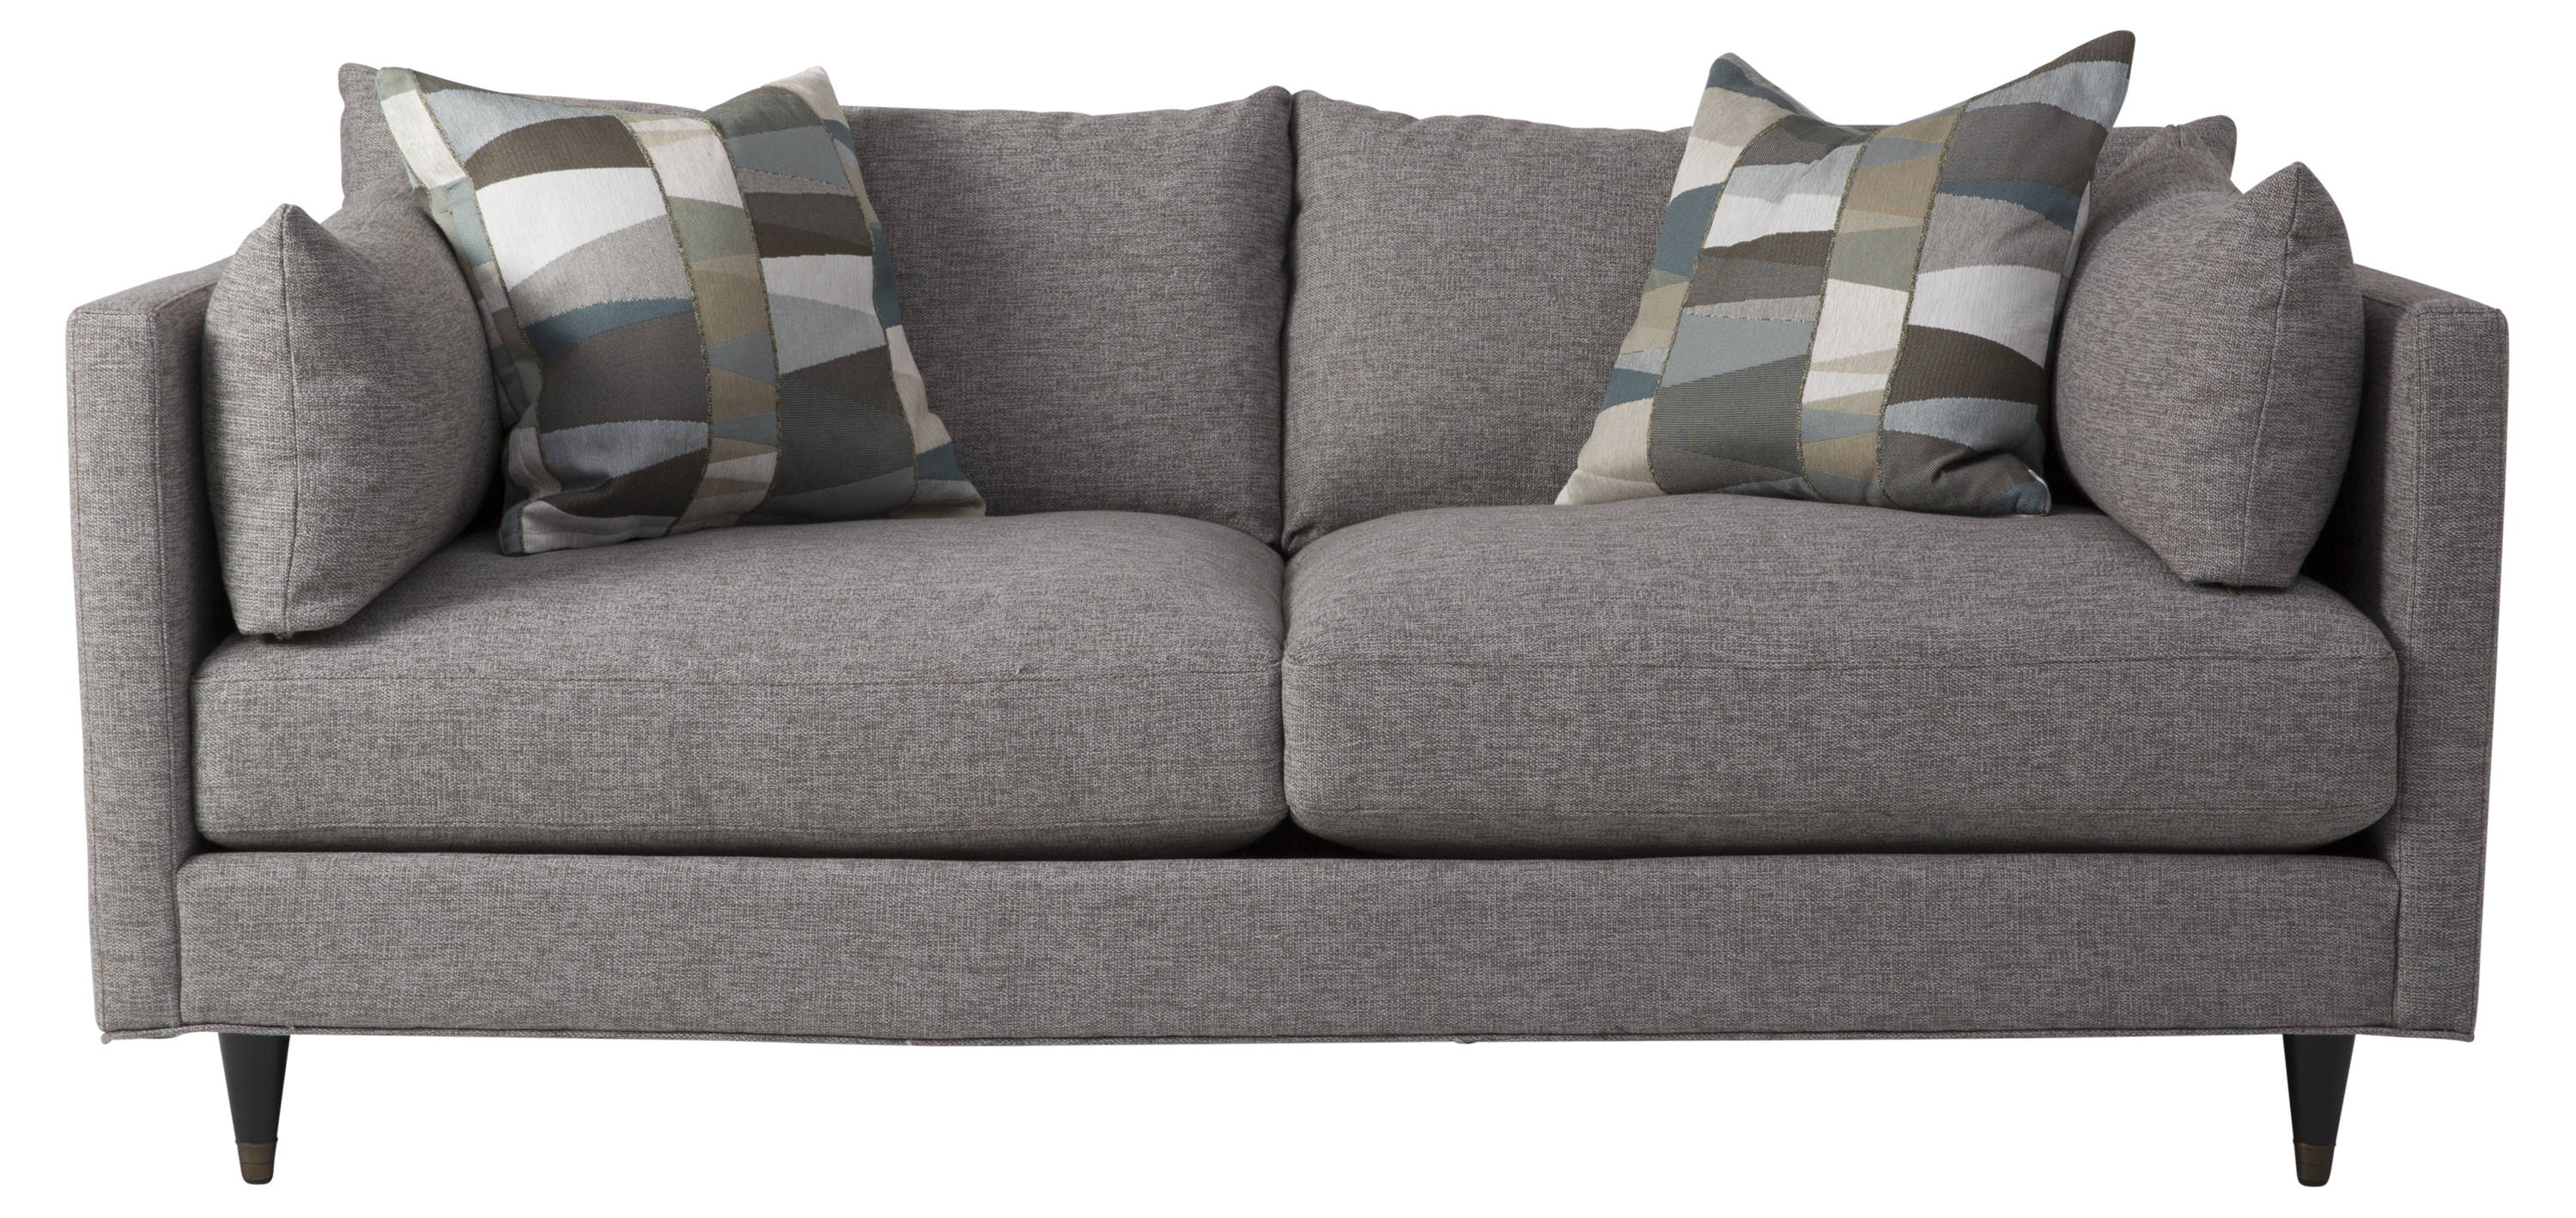 Image of Dufresne My Custom Pia Sofa - Oak colour with two pillows on the sofa